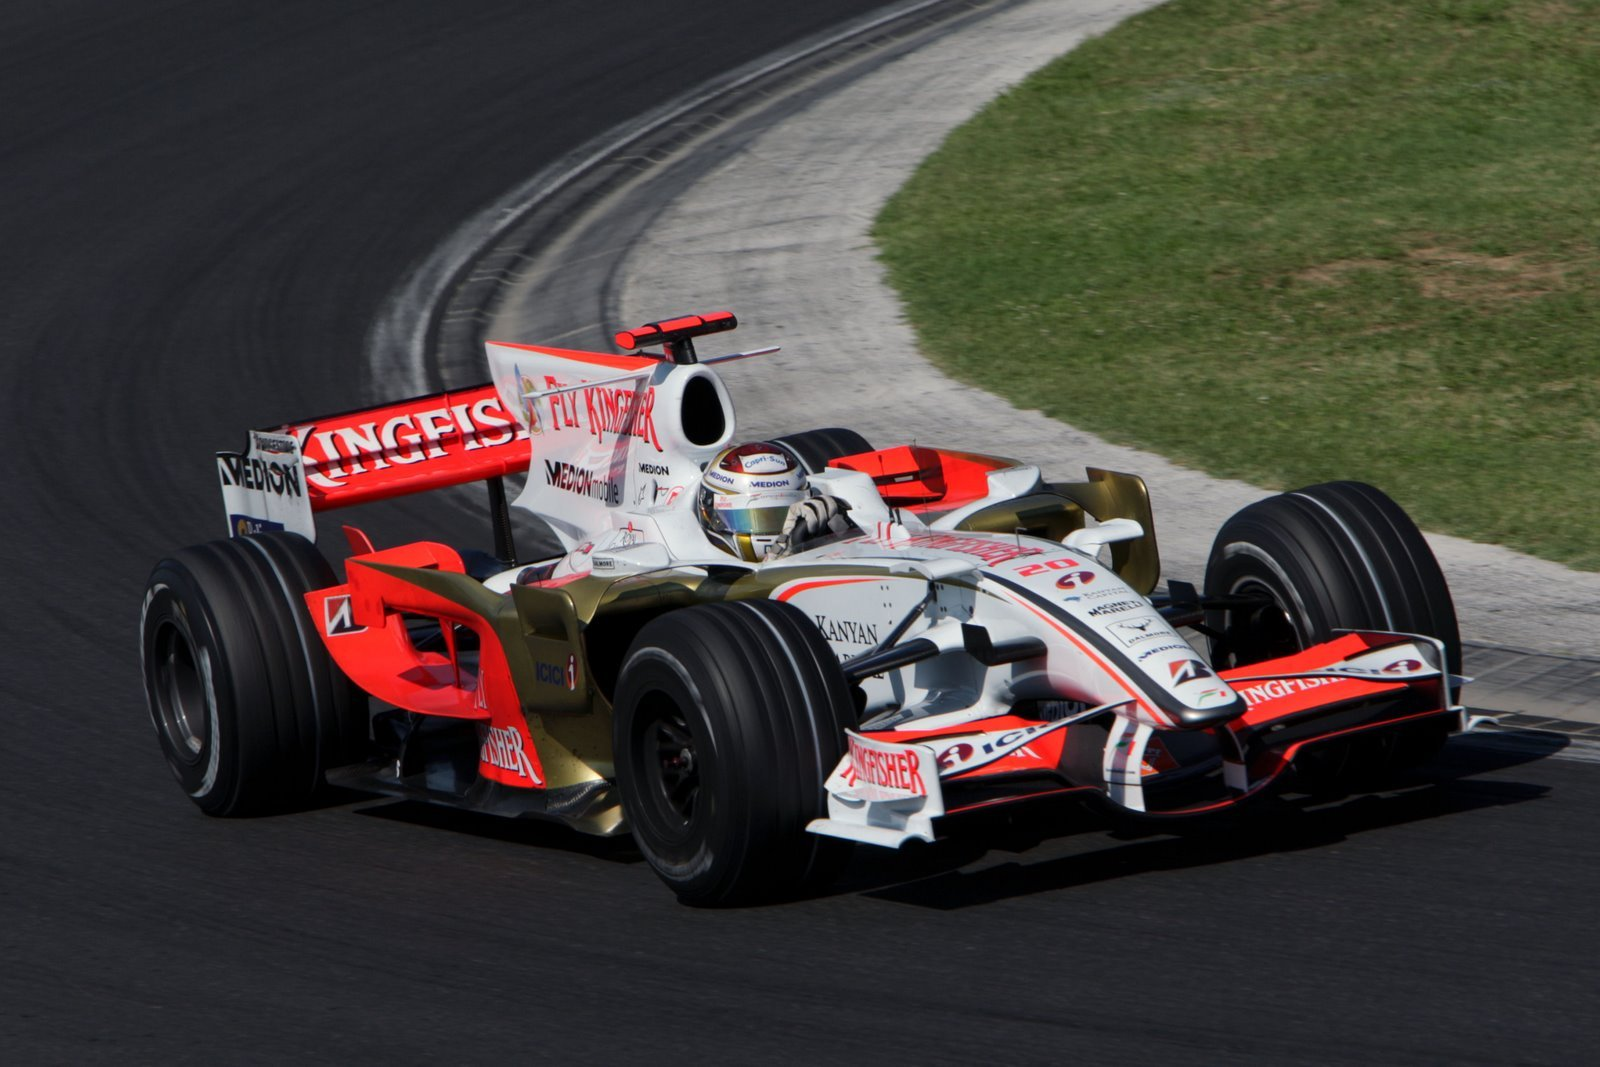 Kimi raikkonen in the f2008 a car at the peak of the crazy aero era